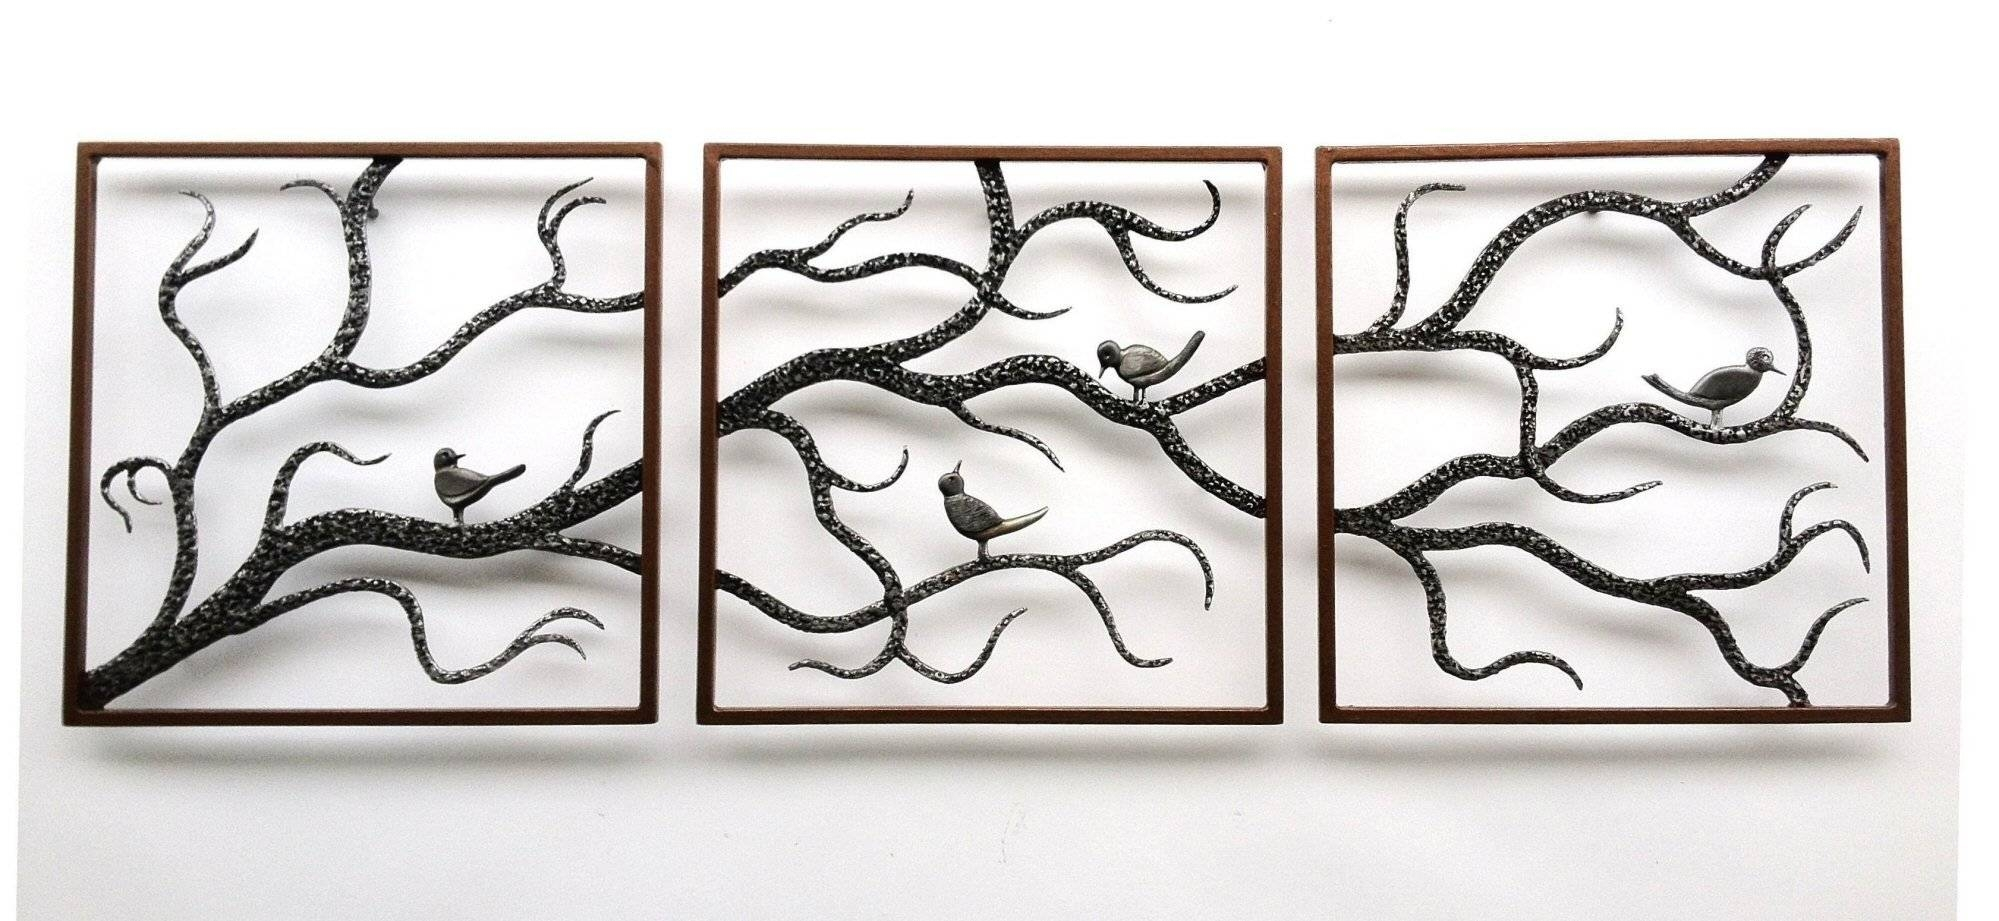 Wall Art Designs: Metal Wall Art Trees Birch Three Framed Cute With Regard To Best And Newest Unique Metal Wall Art Decors (View 5 of 20)